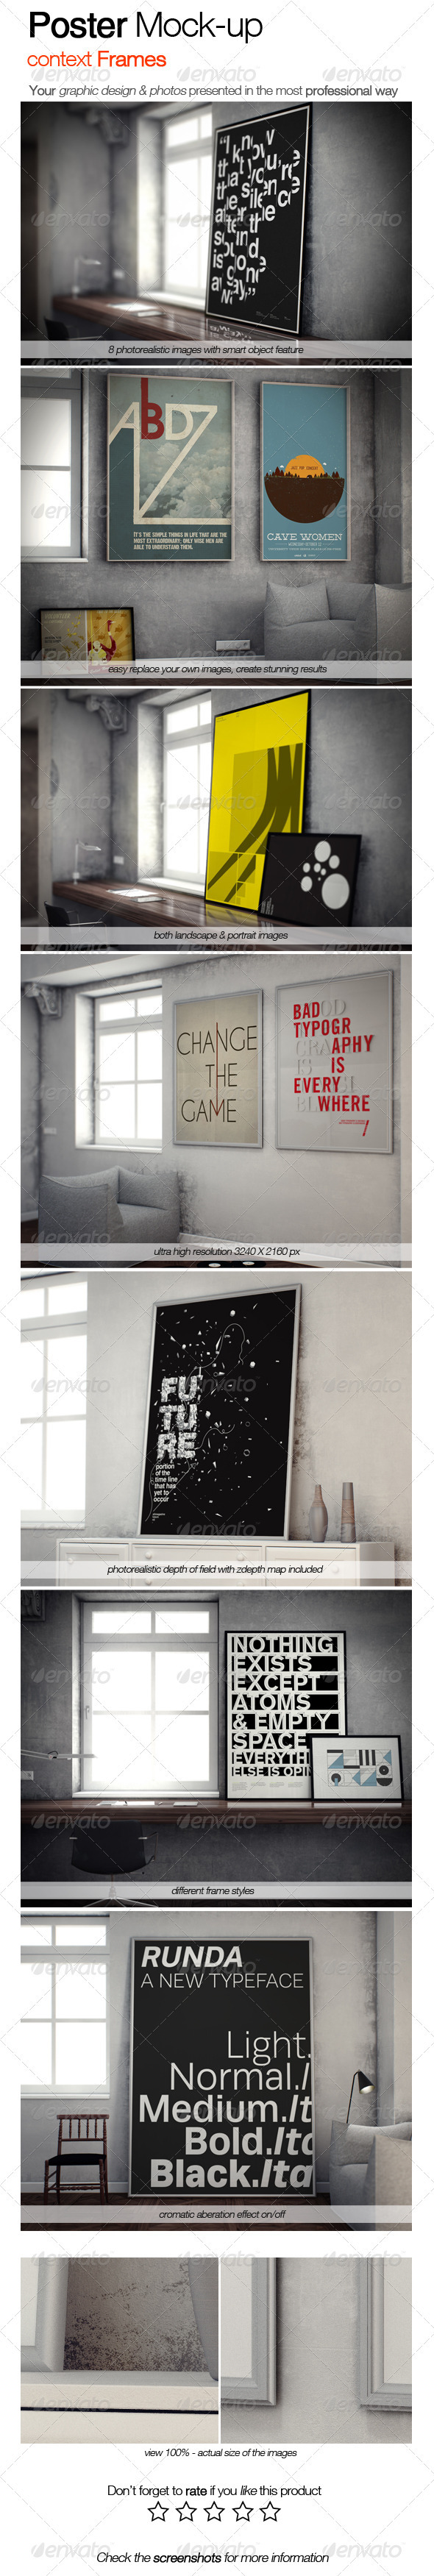 GraphicRiver Poster Mock-up Context Frames 3560037